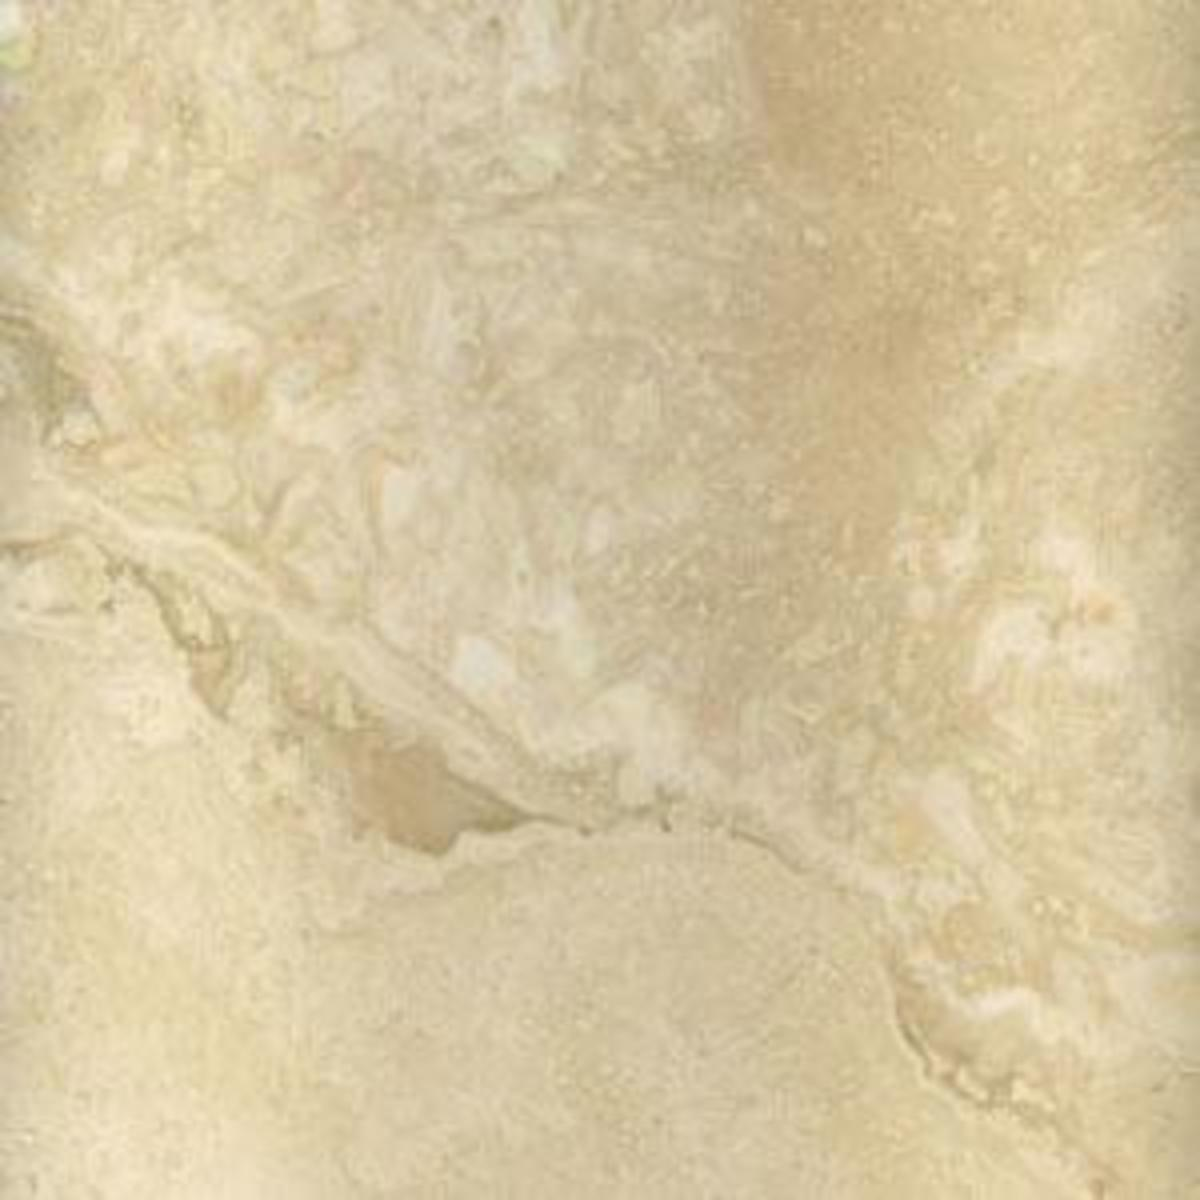 Beautuful travertine tile.